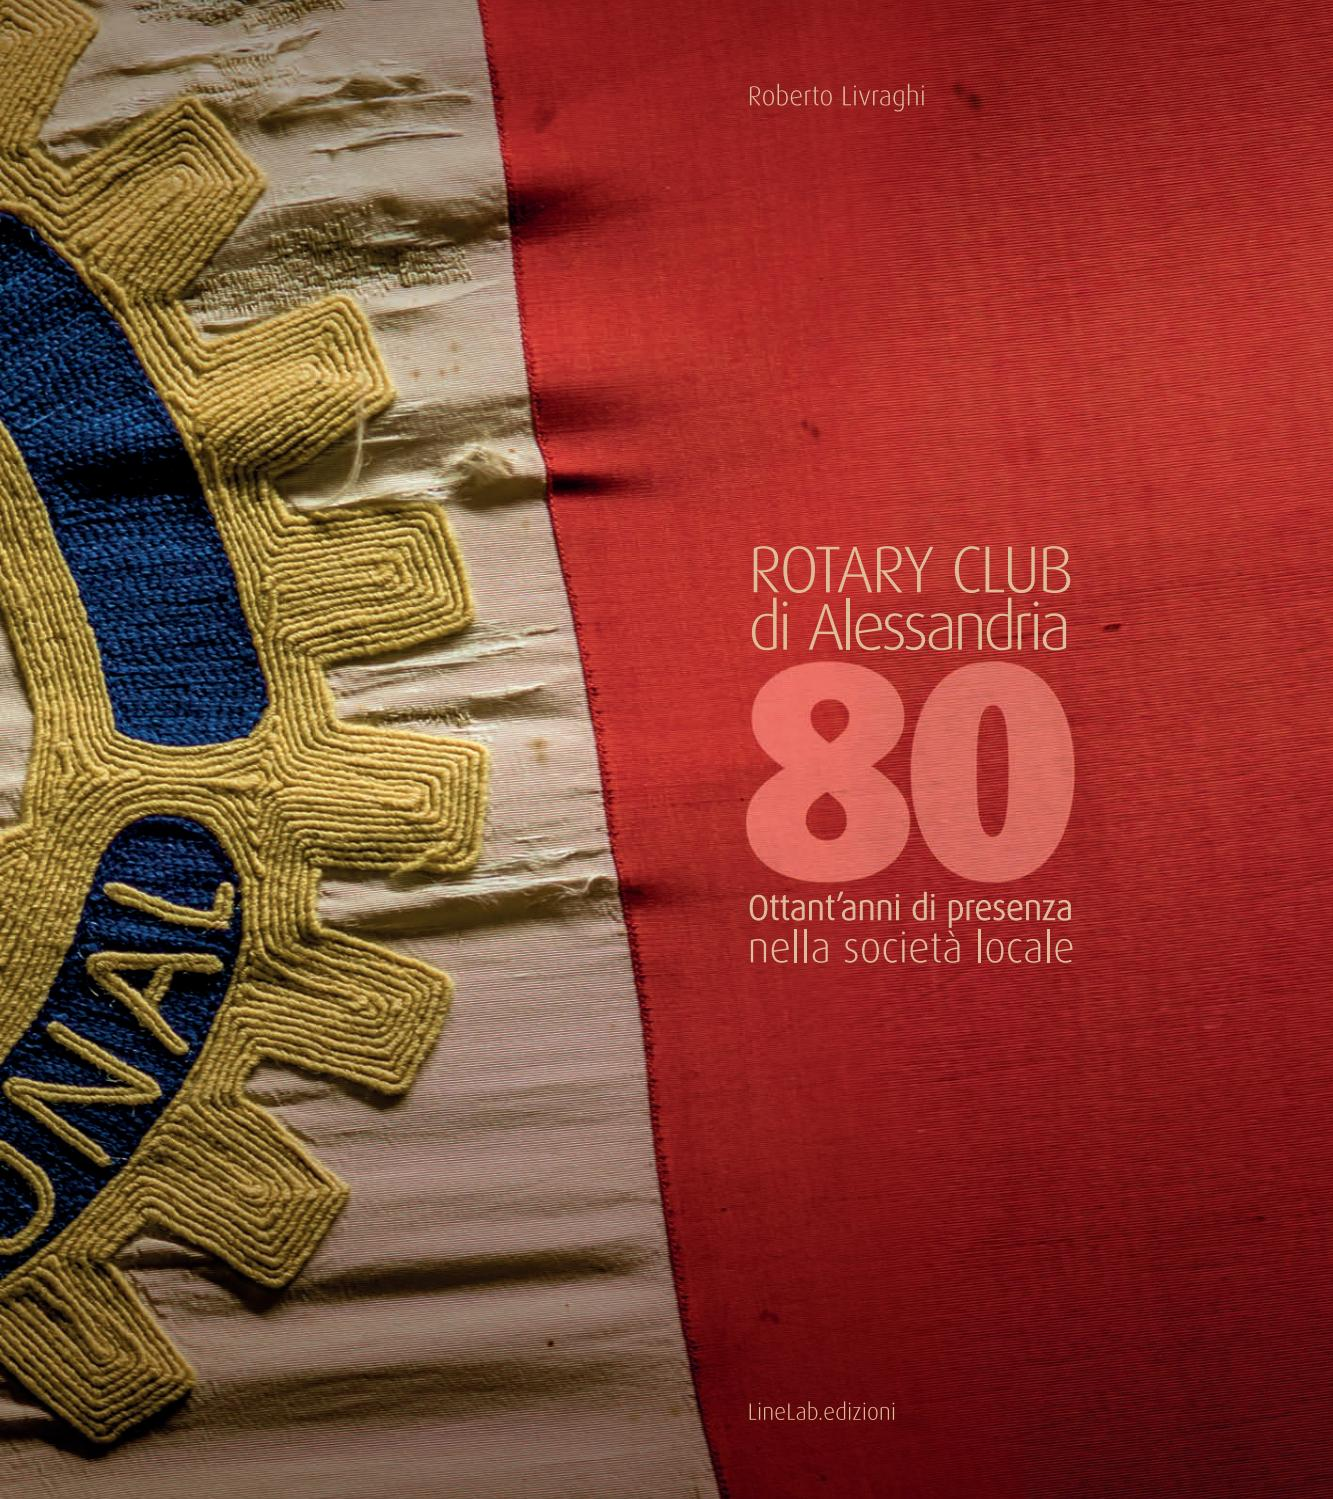 L Officina Dell Occhiale Alessandria rotary club di alessandria by linelab creative agency - issuu